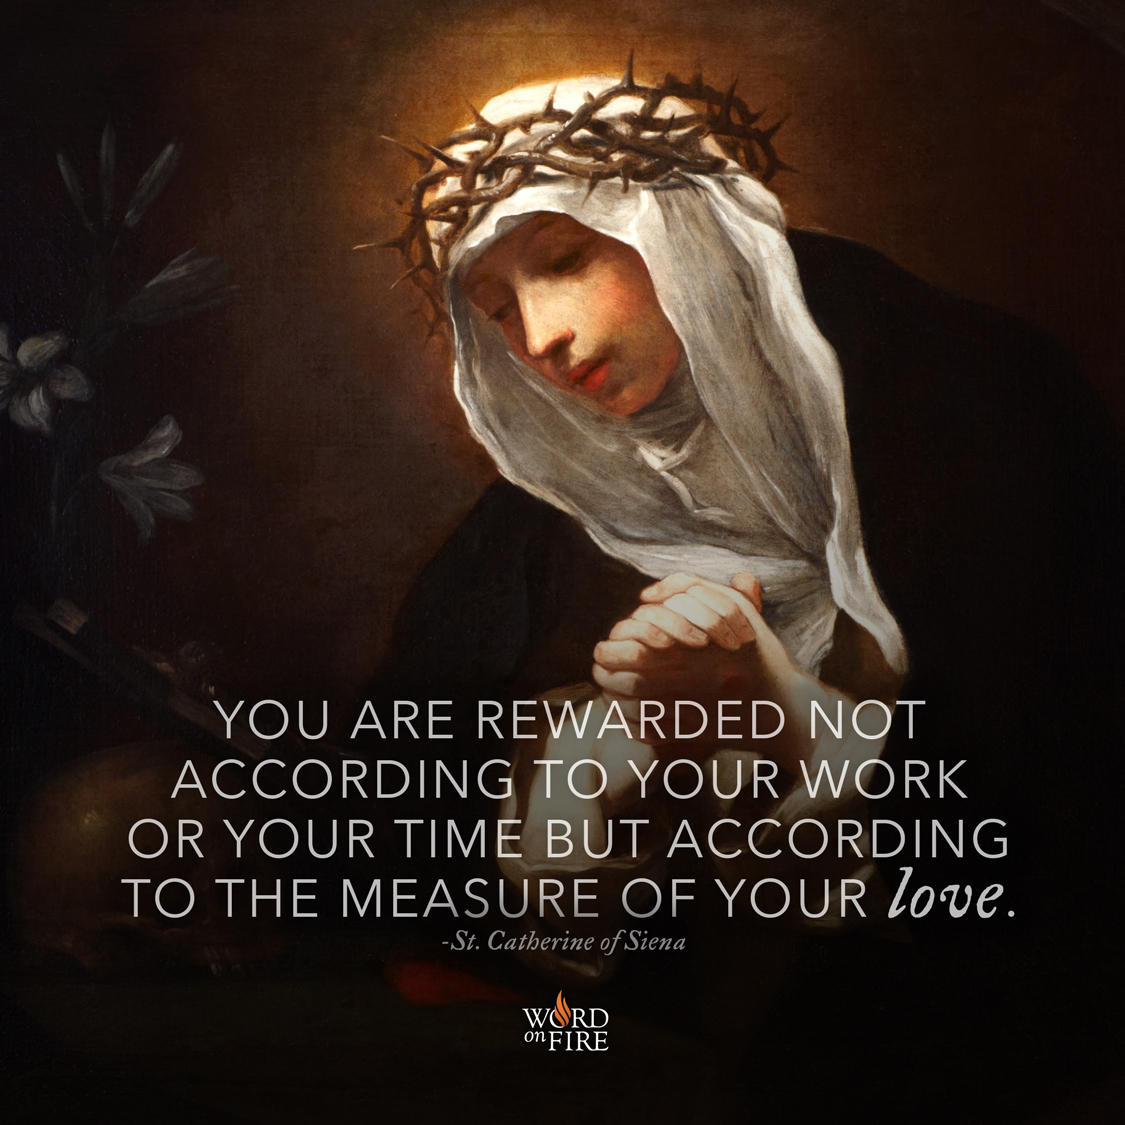 Saint Catherine Of Siena Quotes: PrayerGraphics.com » St. Catherine Of Siena